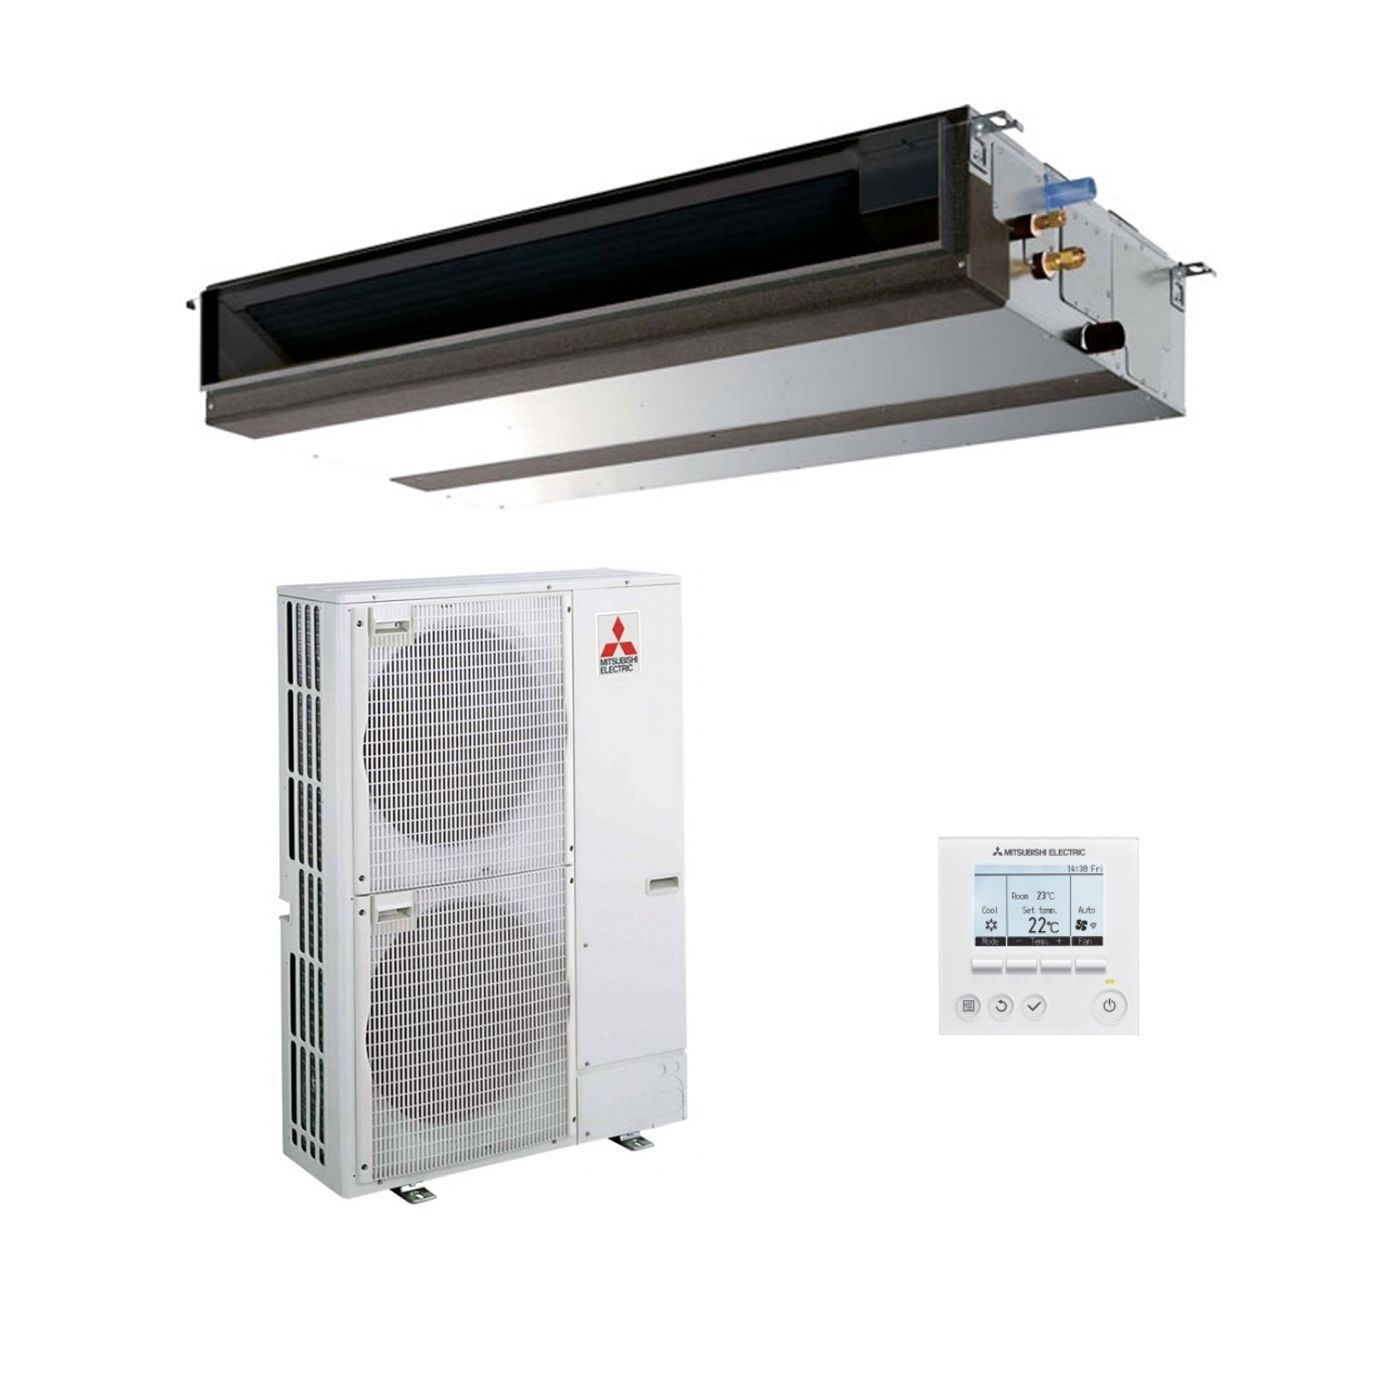 hight resolution of mitsubishi electric air conditioning pead m125ja ducted concealed inverter heat pump 12 5kw 42000btu